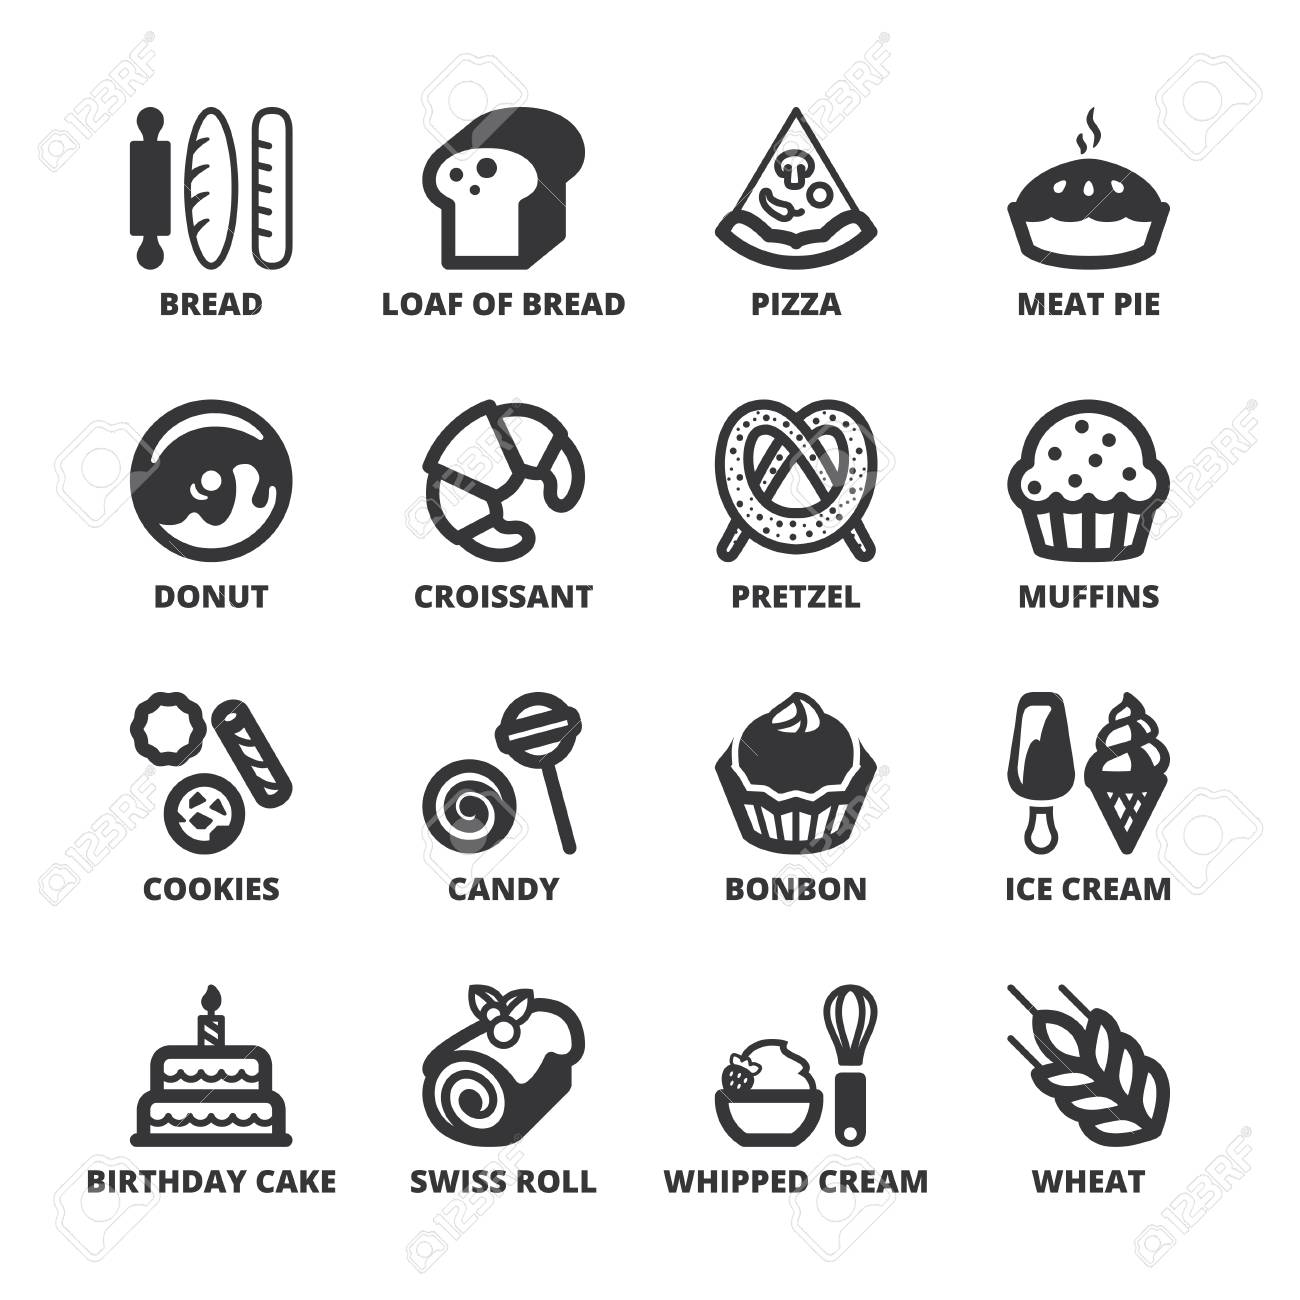 Set Of Black Flat Symbols About Bakery Royalty Free Cliparts